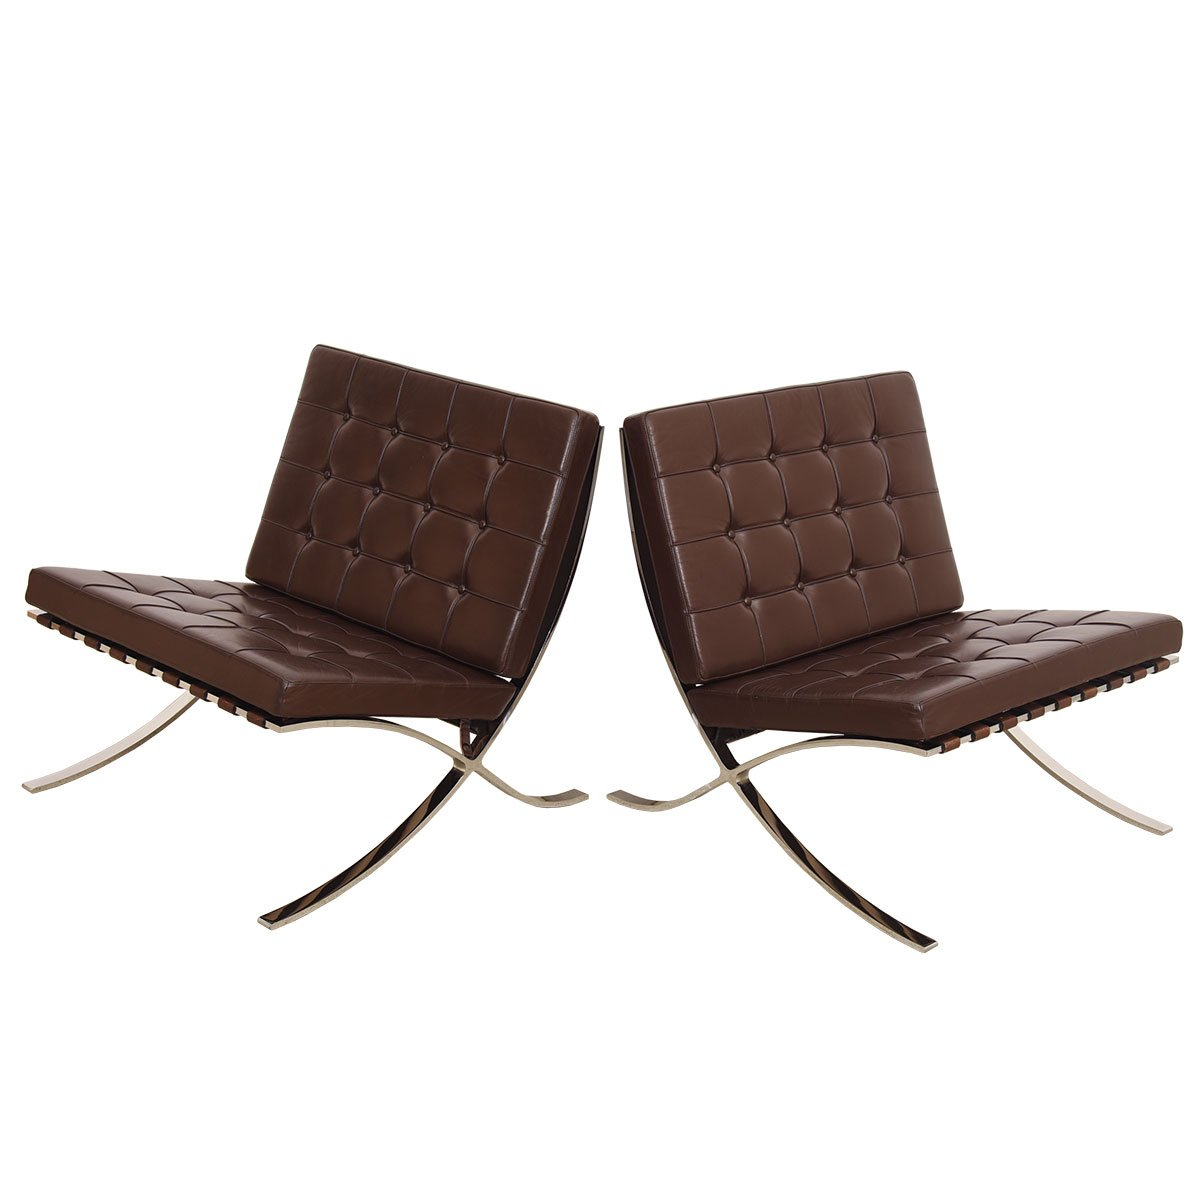 Chocolate Brown Pair of Mies van der Rohe Barcelona Chairs